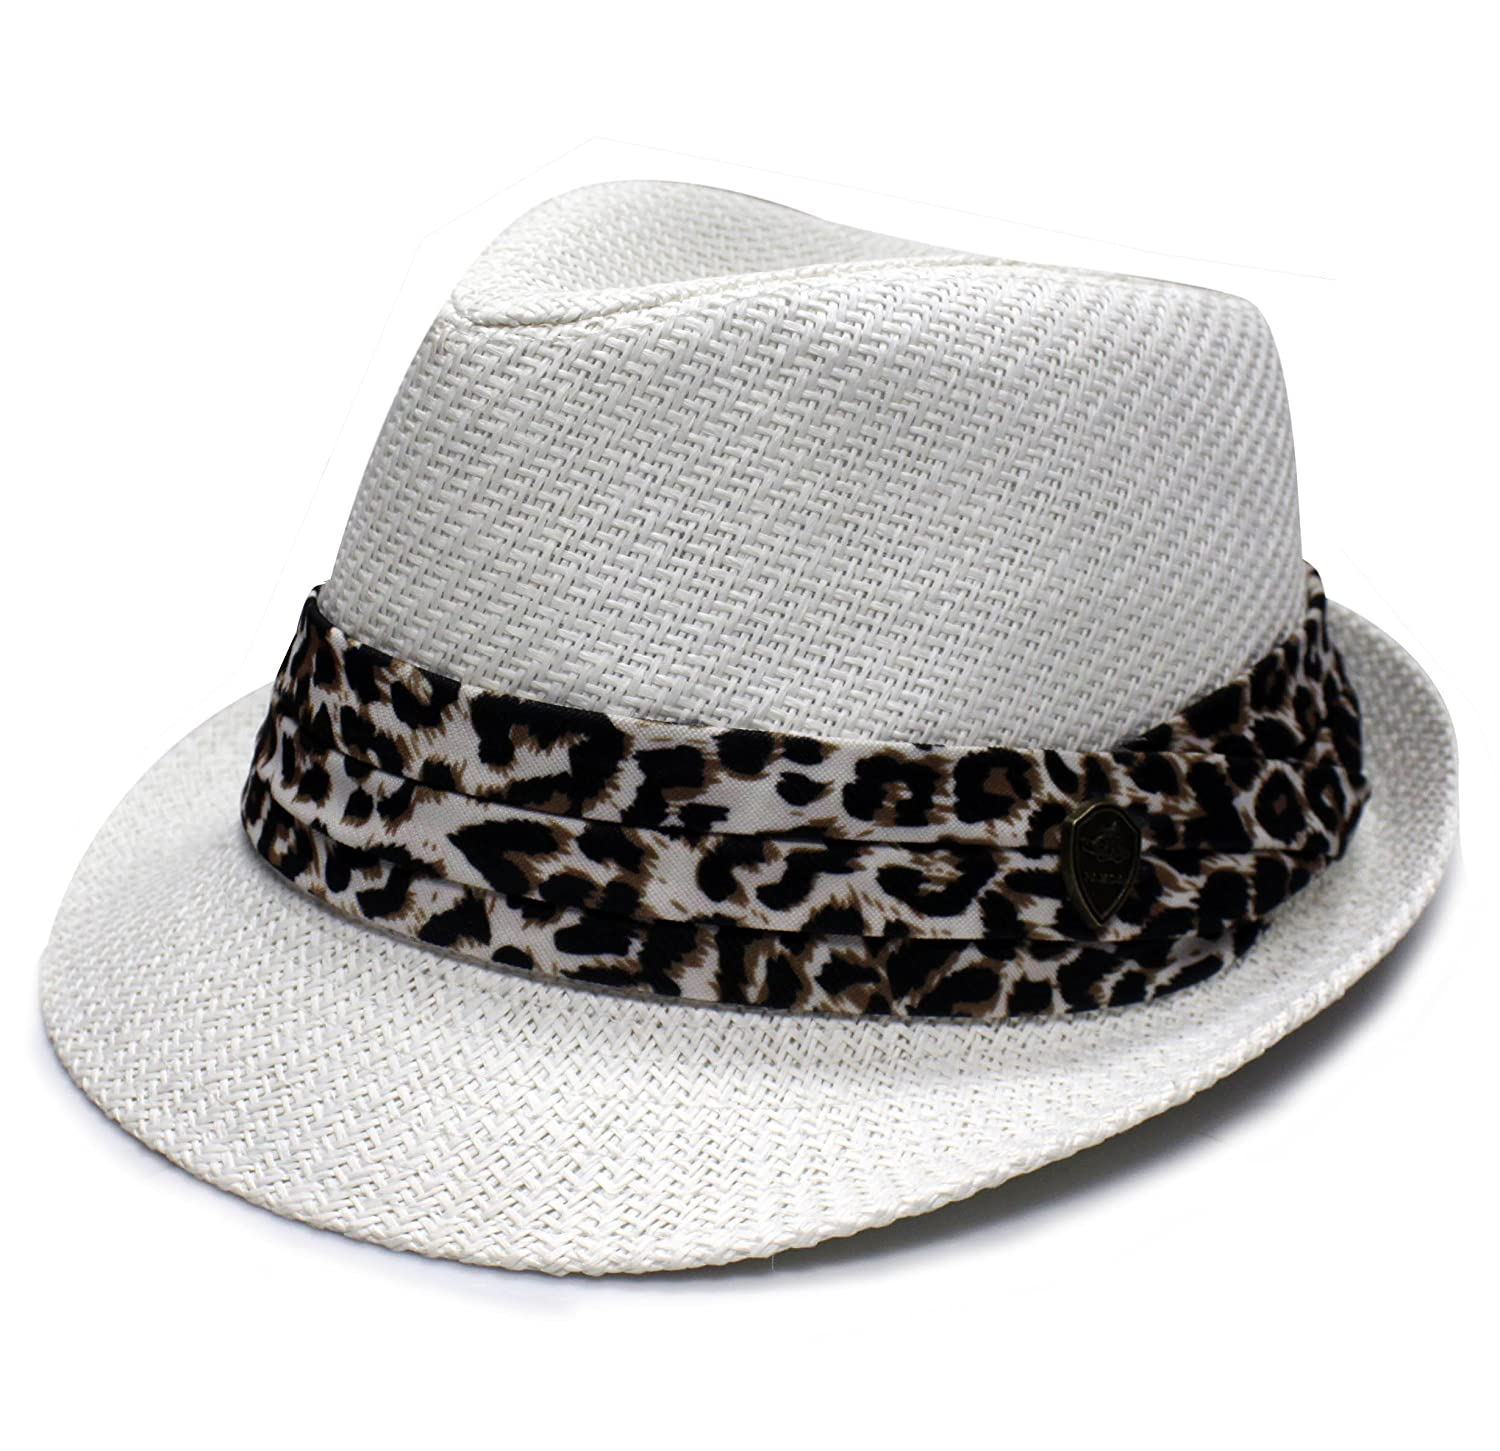 City Hunter Unisex Pms380 Leopard Summer Straw Fedora Hat - 3 Colors